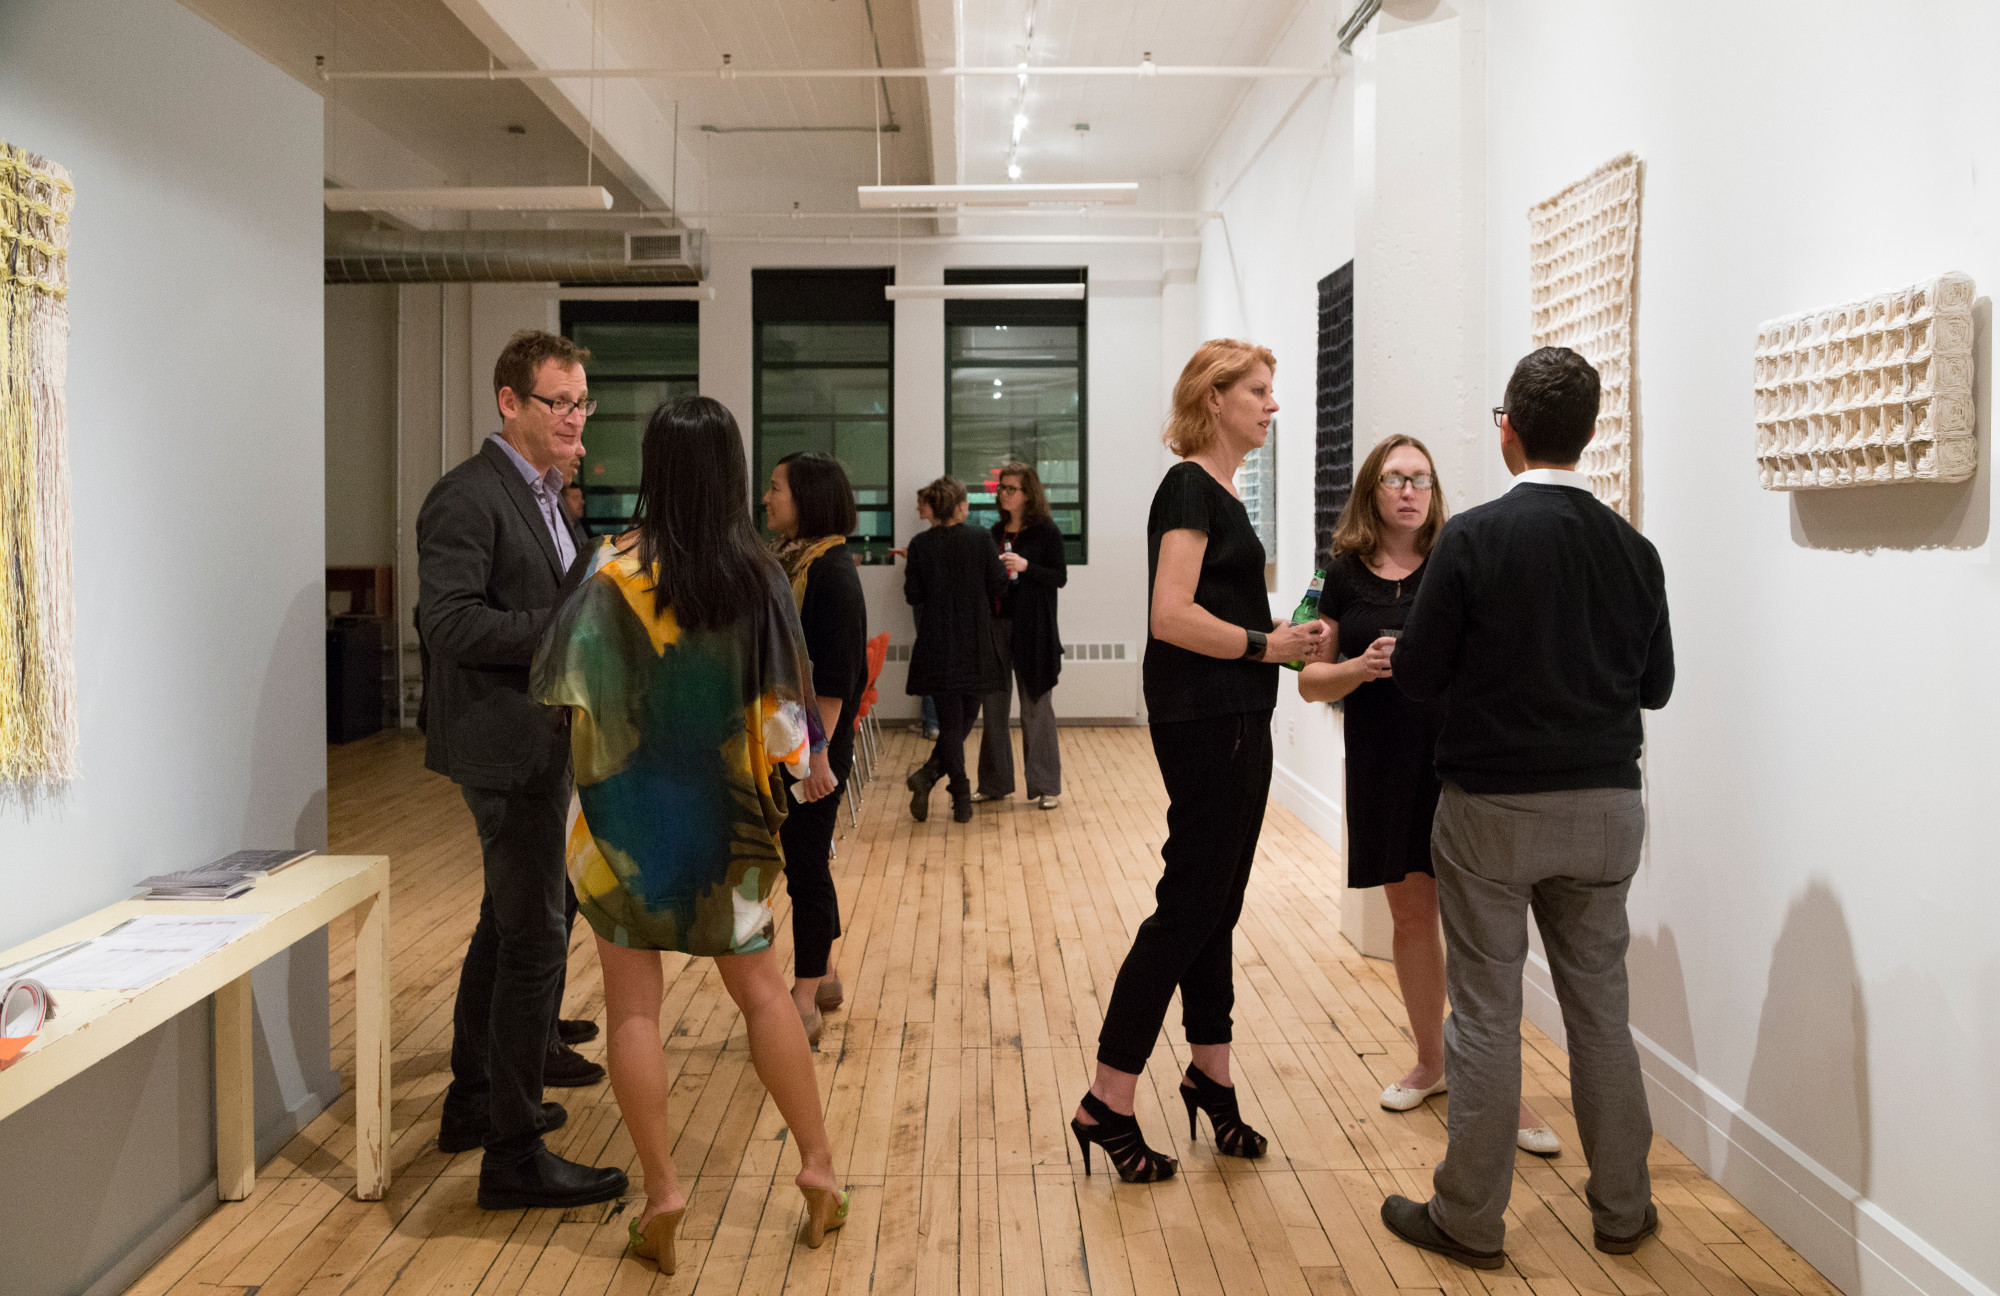 Architects' own Brooklyn offices art opening